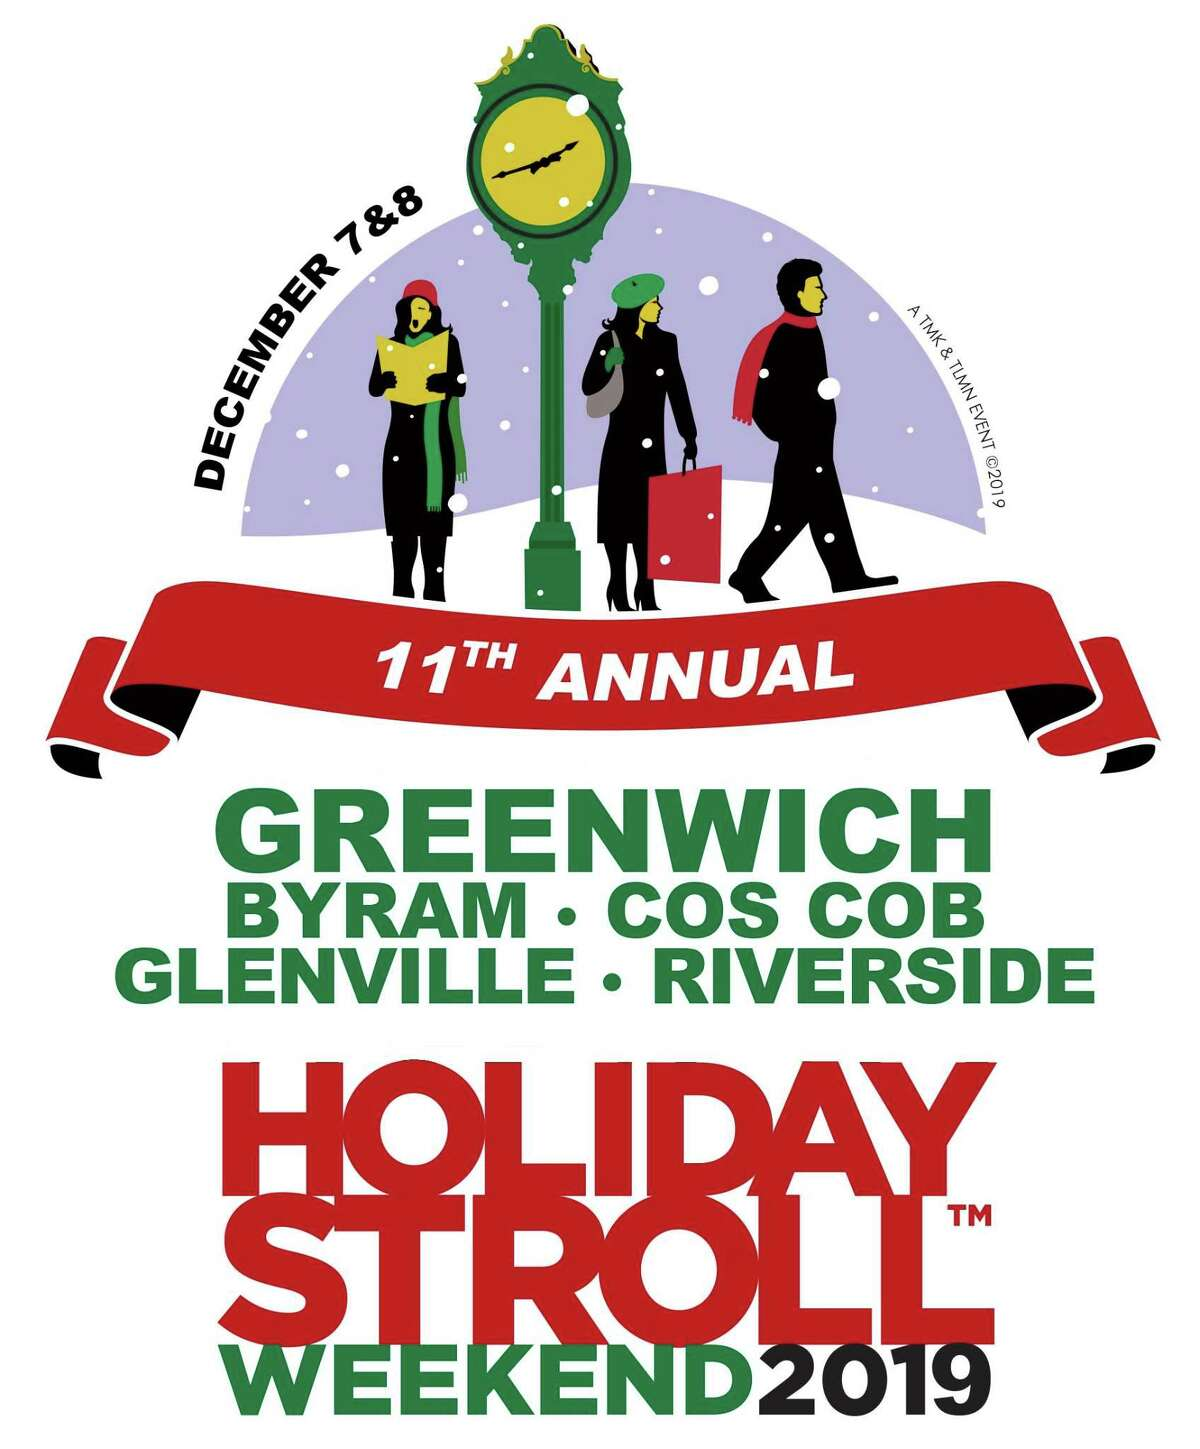 The 11th annual Greenwich Holiday Stroll Weekend takes place this Saturday and Sunday. Find out more.